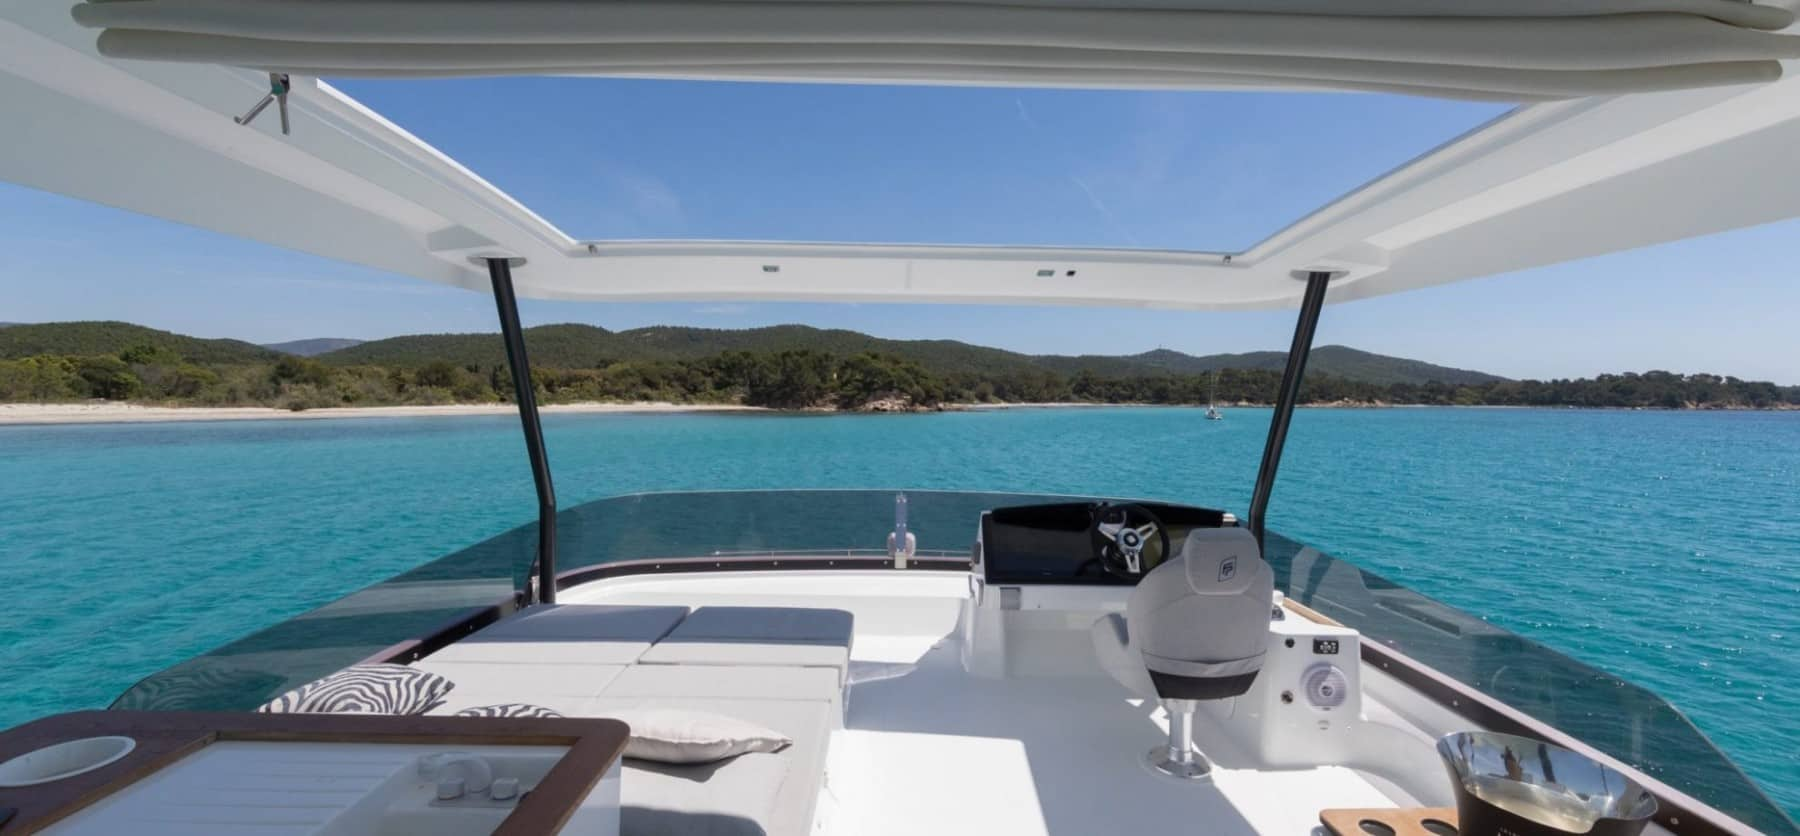 View from the gorgeous flybridge of a Fountaine Pajot MY 44 thats floating in clear, blue water and has a tropical island ahead of it